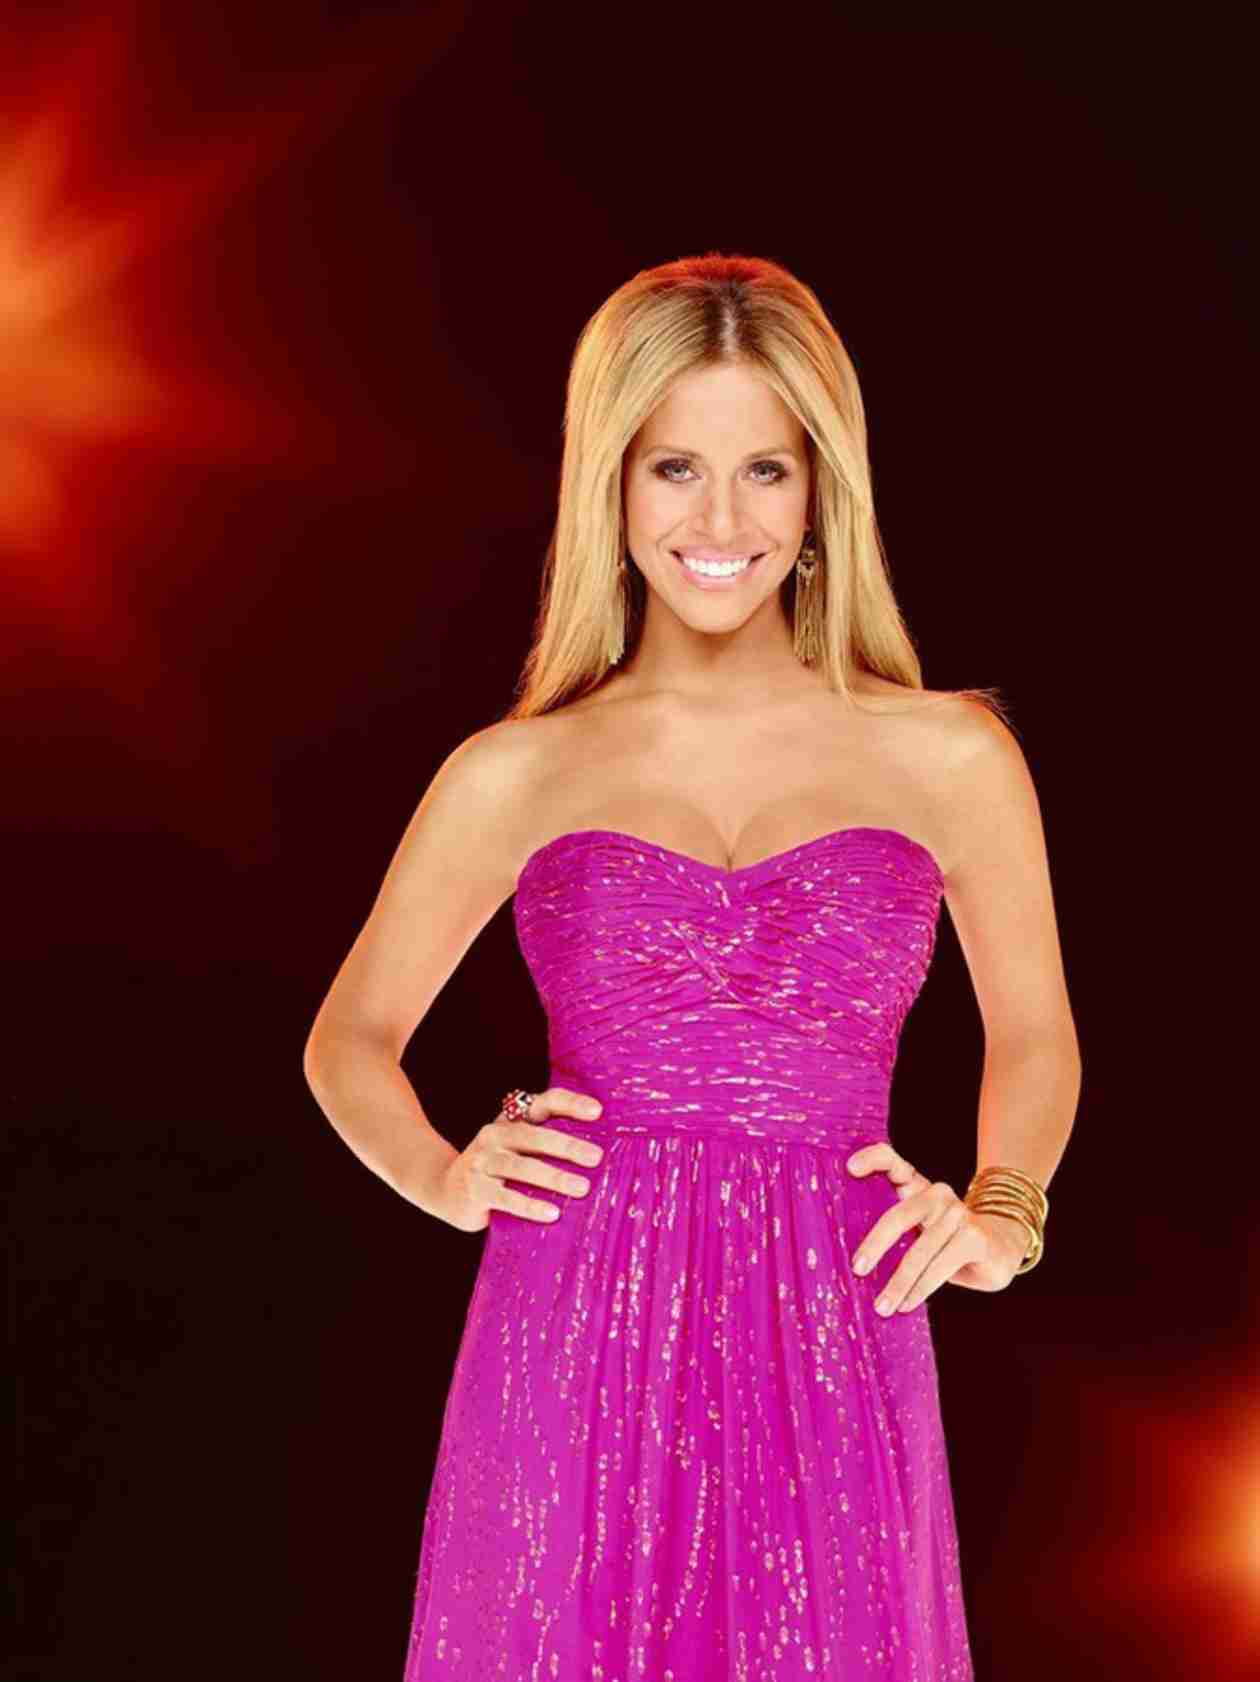 Real Housewives of New Jersey: Why Is Dina Manzo Apologizing?